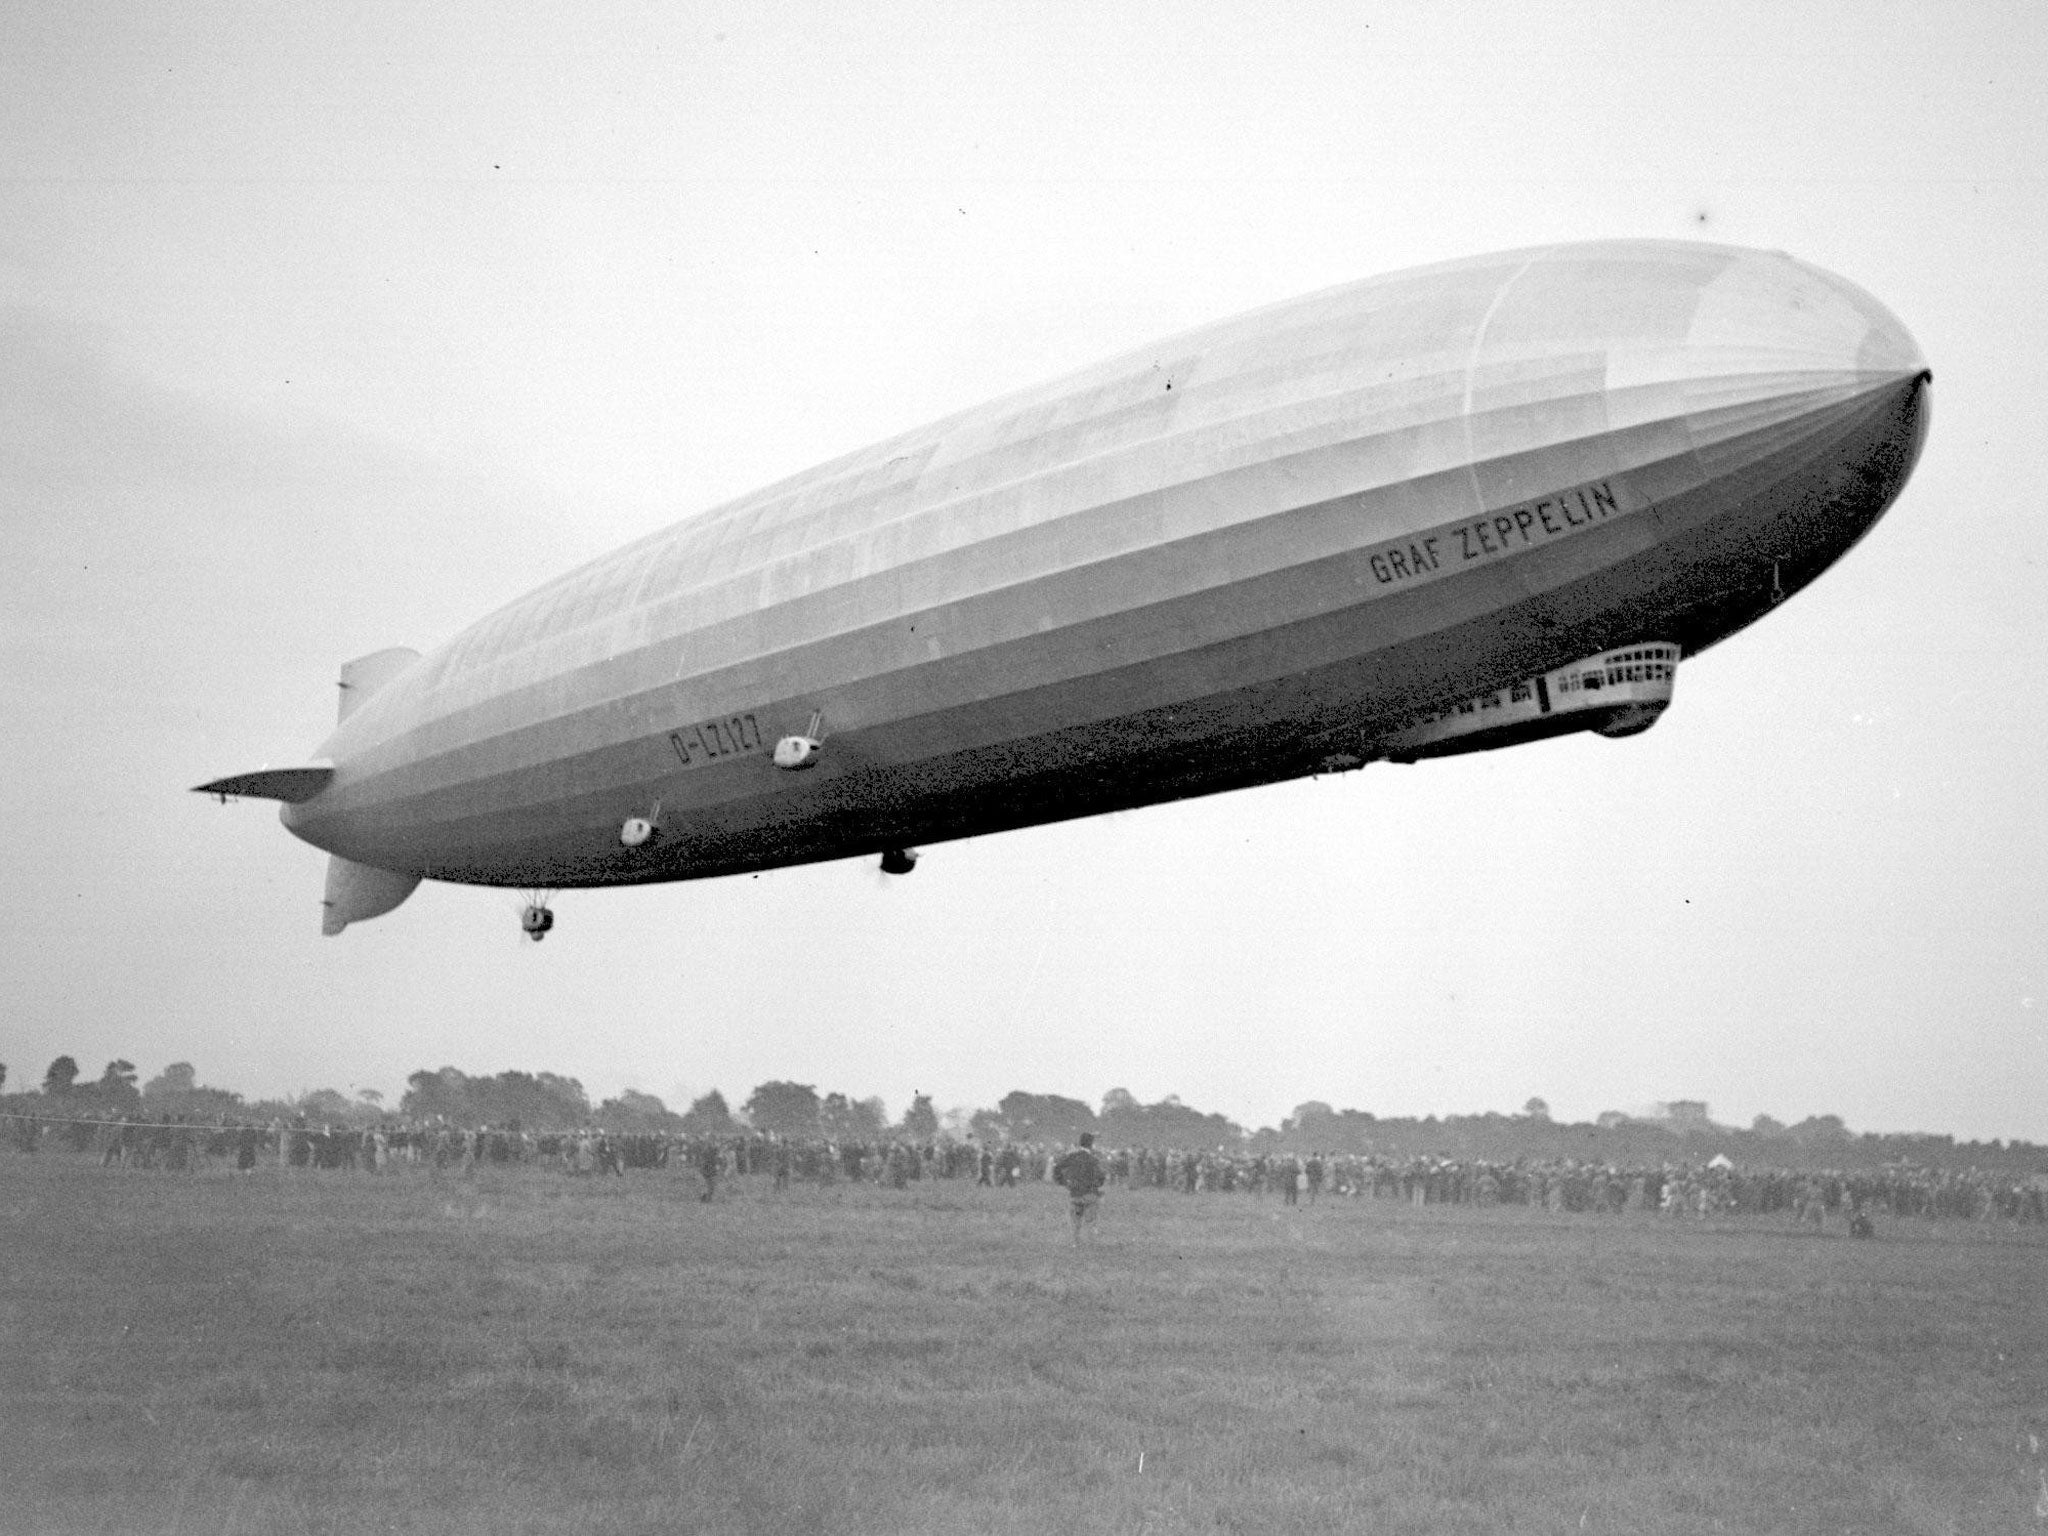 Q: How many cows does it take to build a Zeppelin? A: 250,000